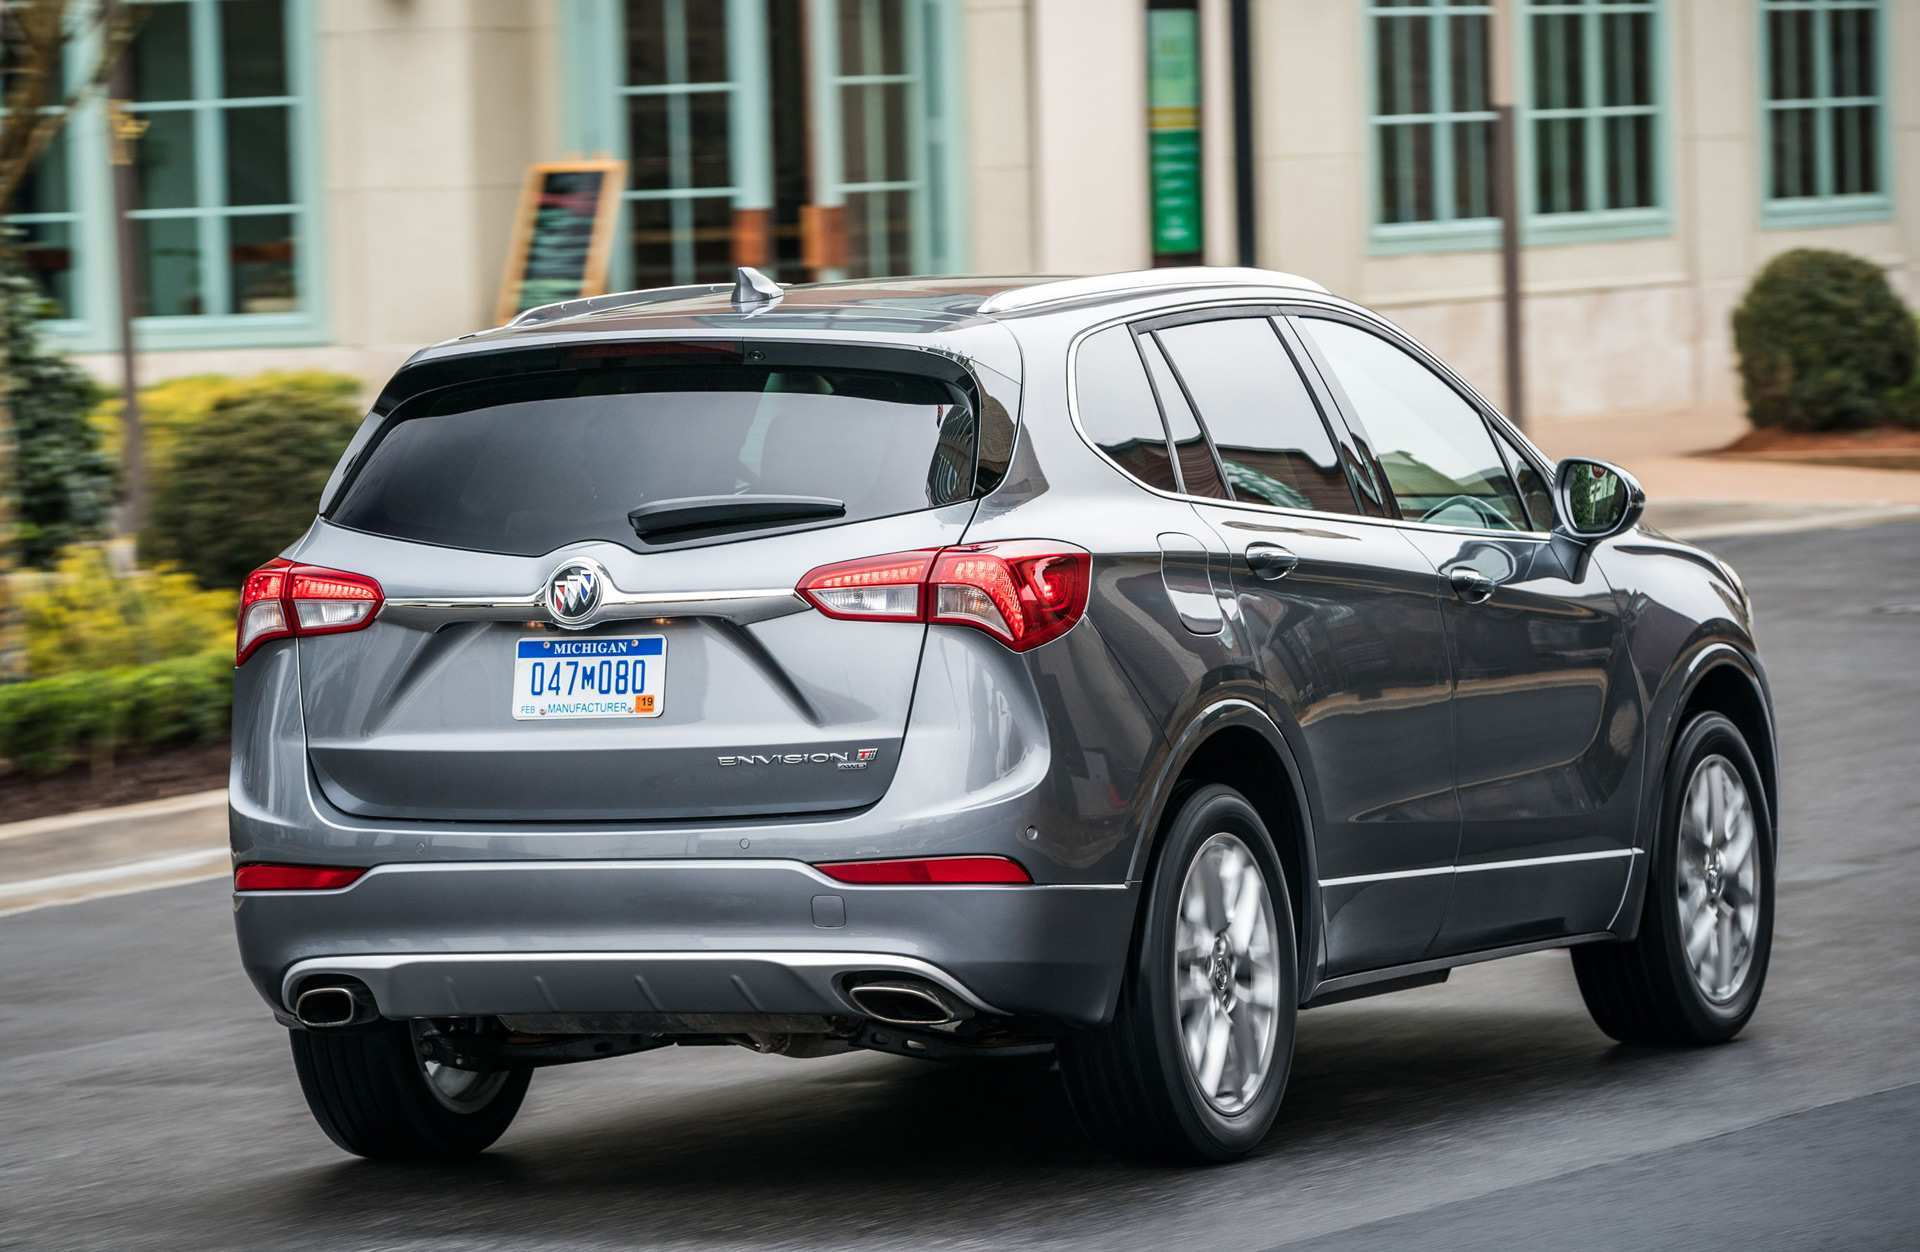 54 The 2020 Buick Envision Price And Review